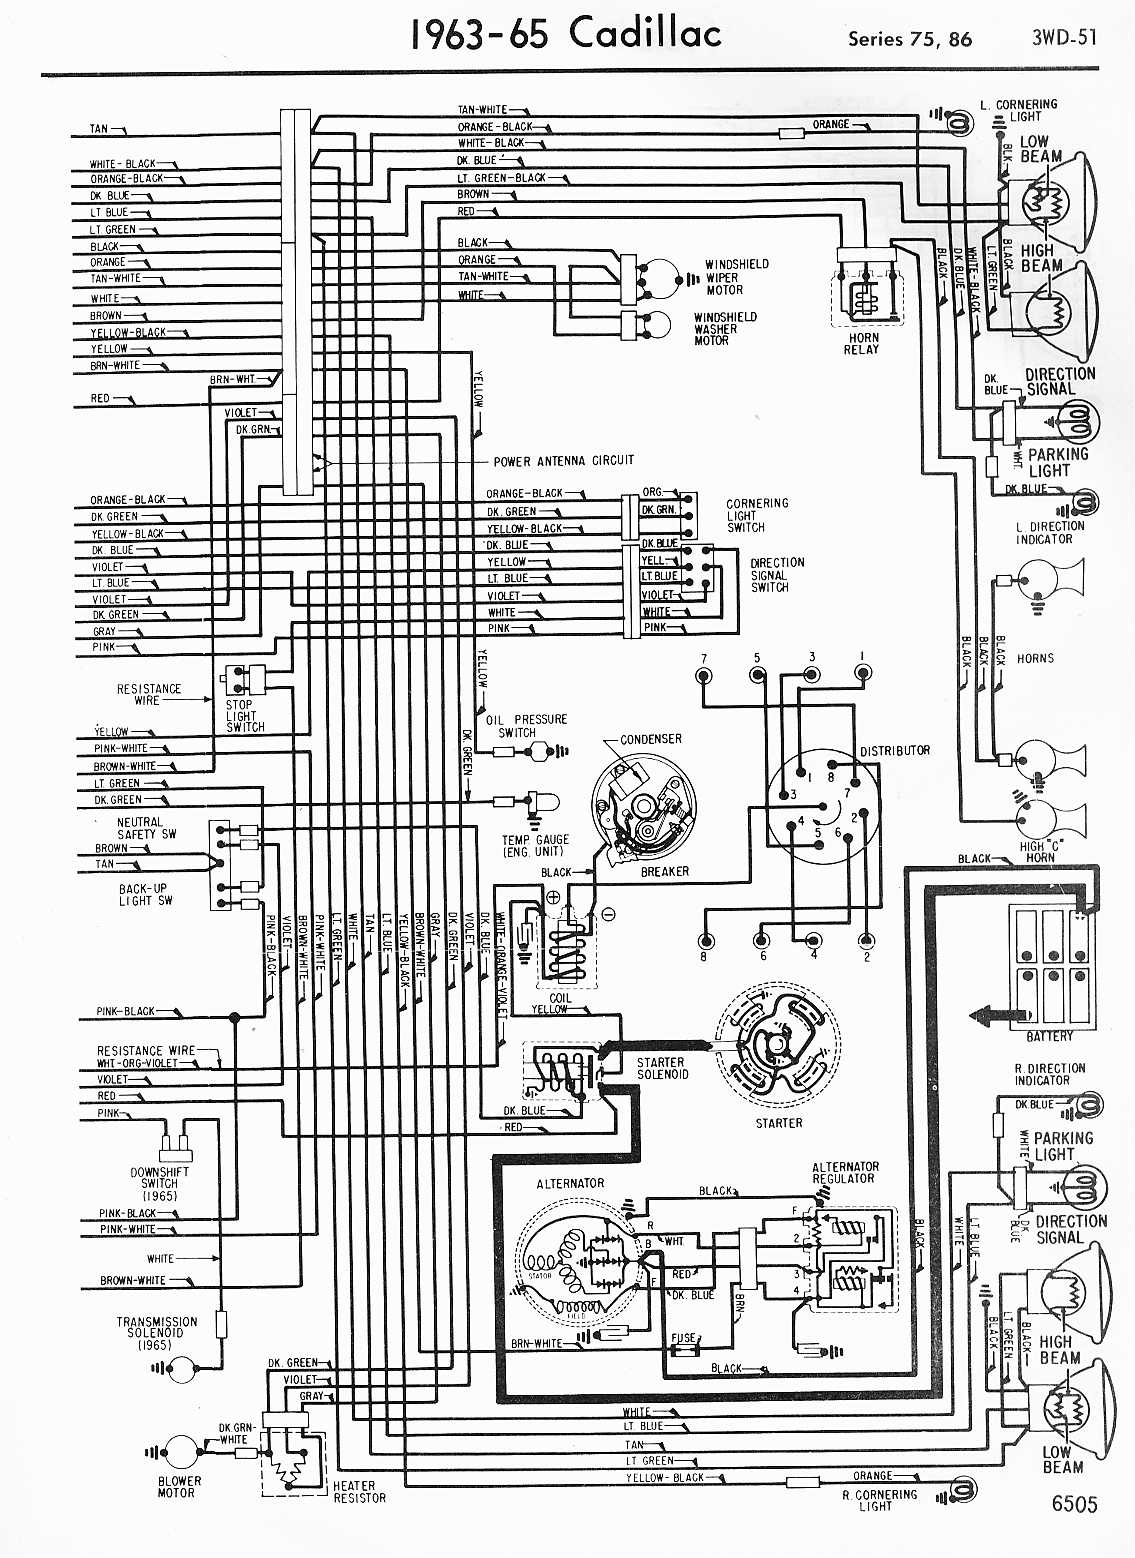 MWireCadi65_3WD 051 cadillac wiring harness ram truck wiring harness \u2022 wiring diagrams  at soozxer.org